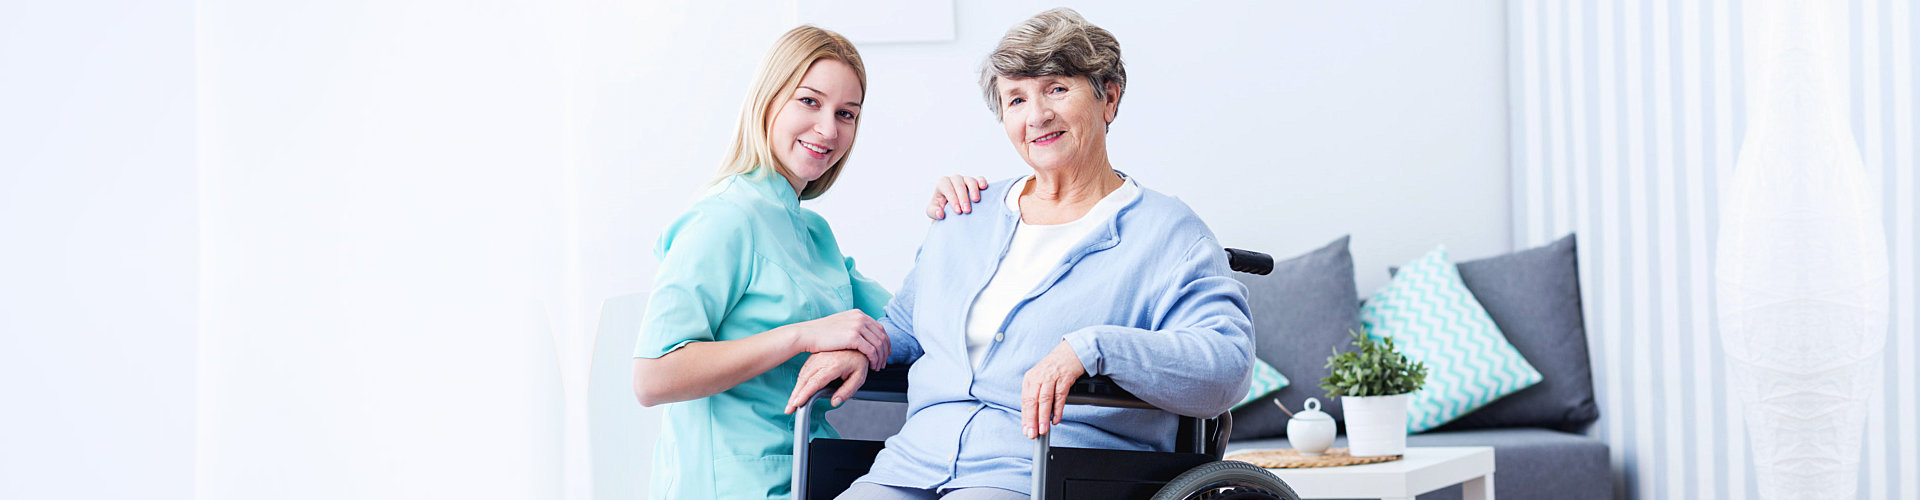 a caregiver woman with a patient